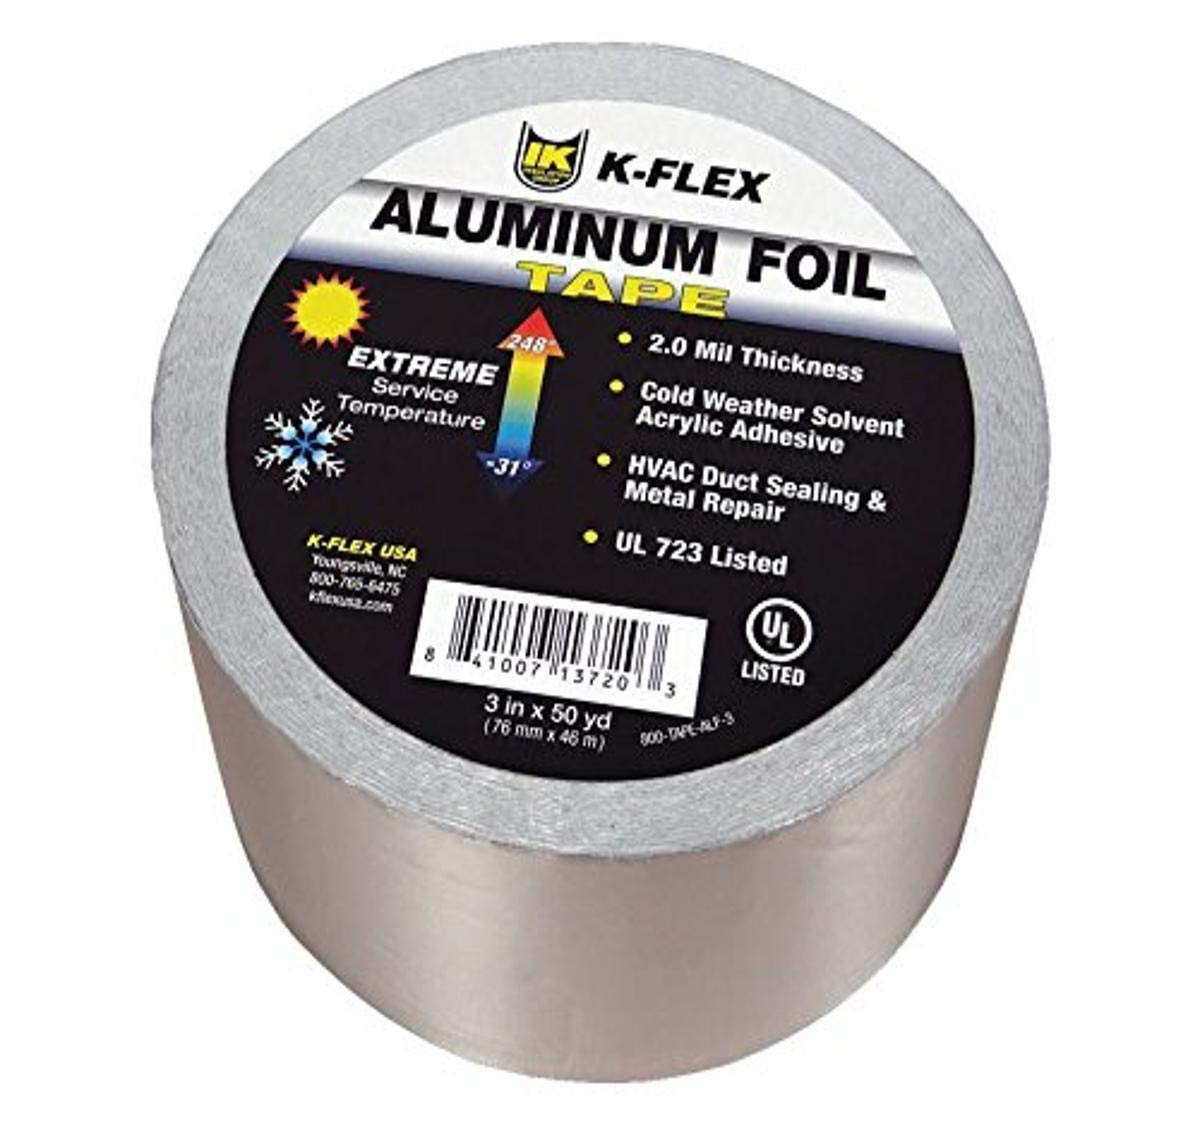 "Malleable Foil 4 Rolls Aluminum Foil Tape 4/"" x 150/' With Liner Free Shipping"